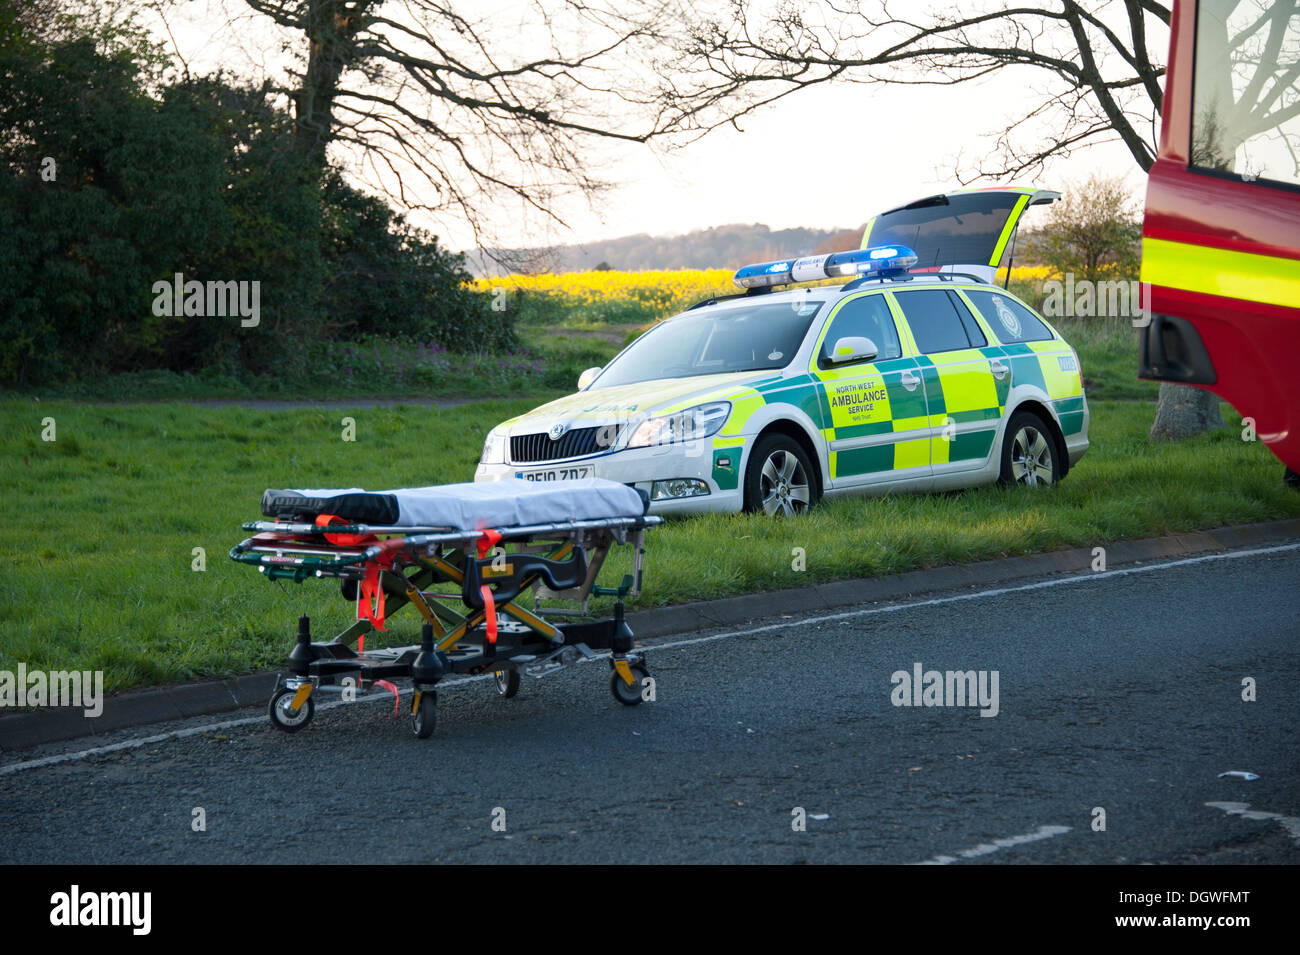 Ambulance Paramedic Rapid Response Vehicle RRV - Stock Image